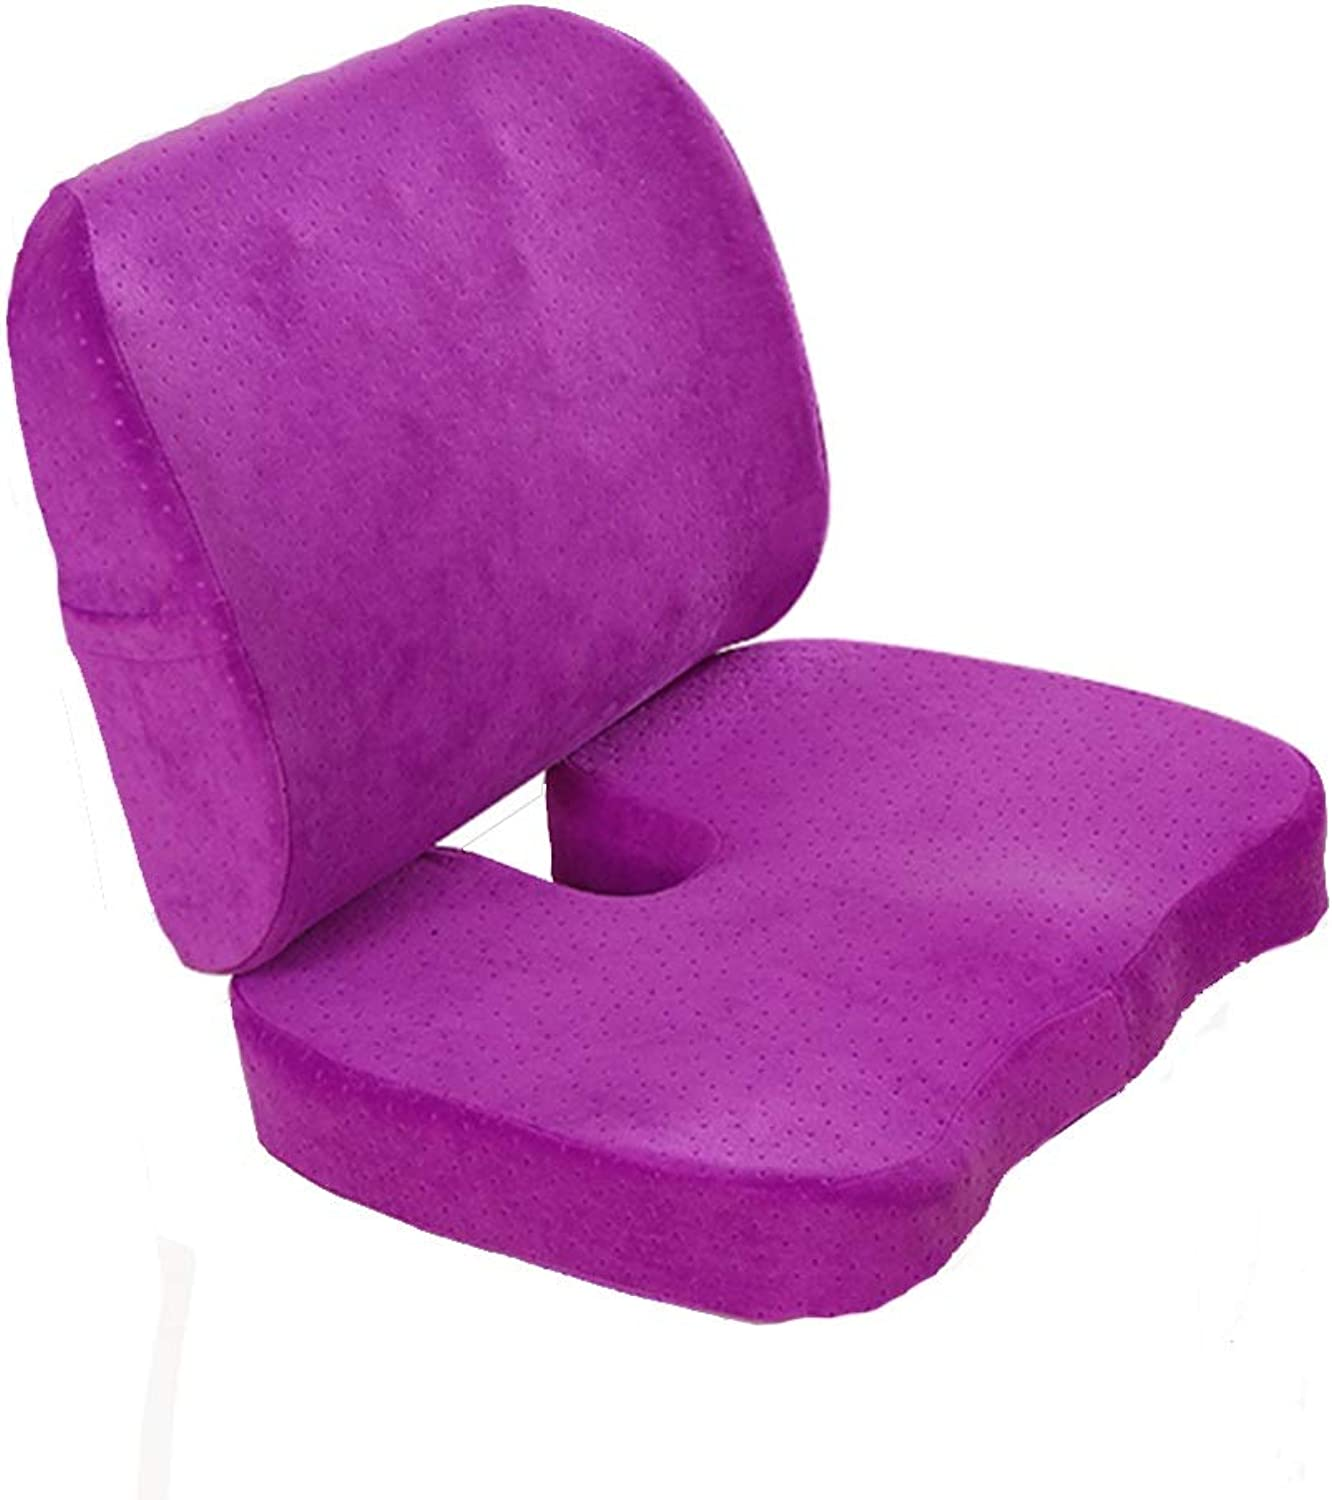 Back Cushion Lumbar Support Pillow Ergonomic Back Support Seat Cushion Suits Office Car Student Pregnant Woman GAOFENG (color   Purple-Suede, Size   Basis)